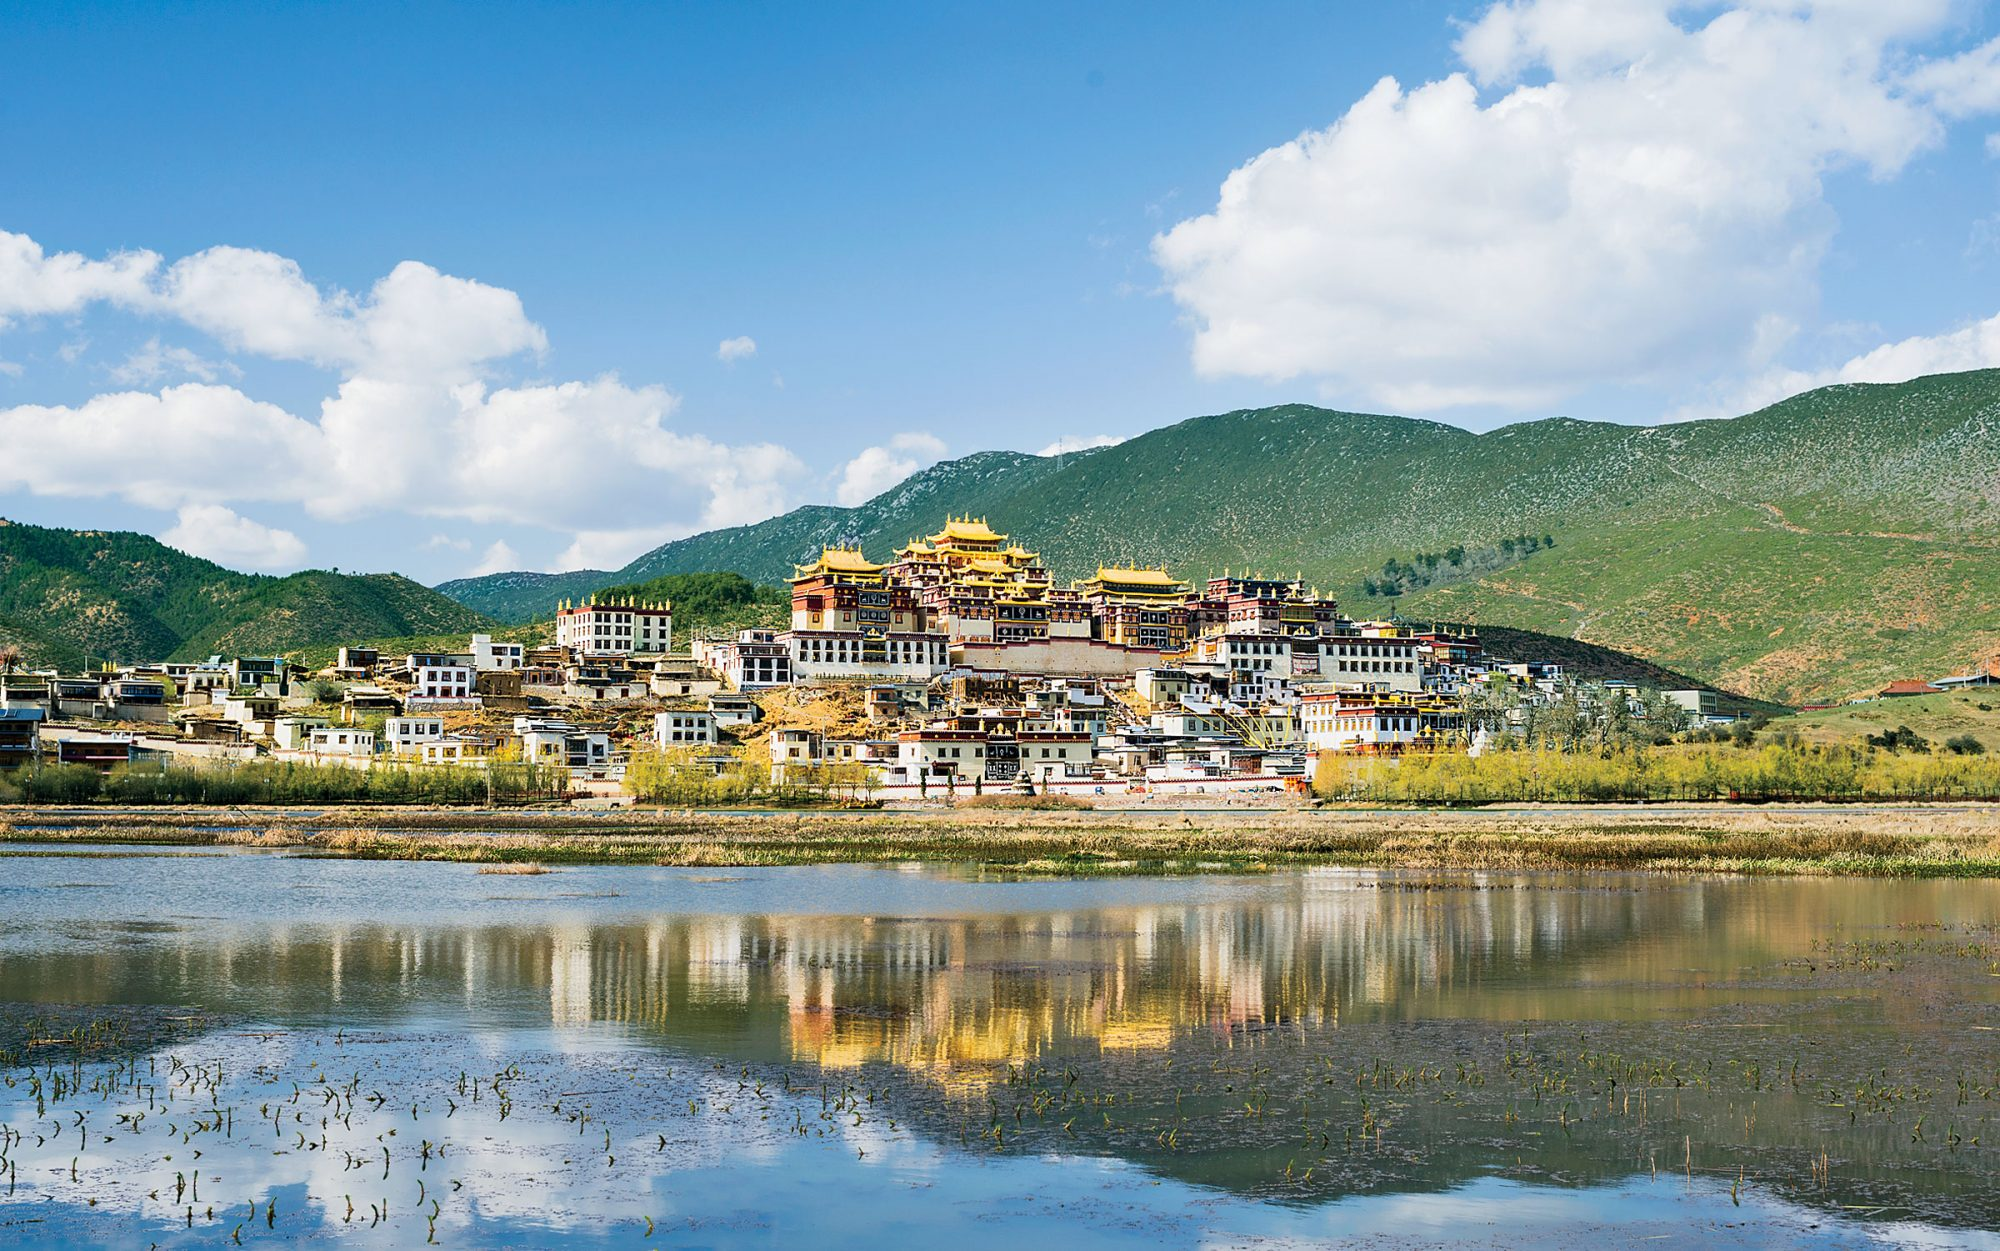 Traveling in China's Yunnan Province